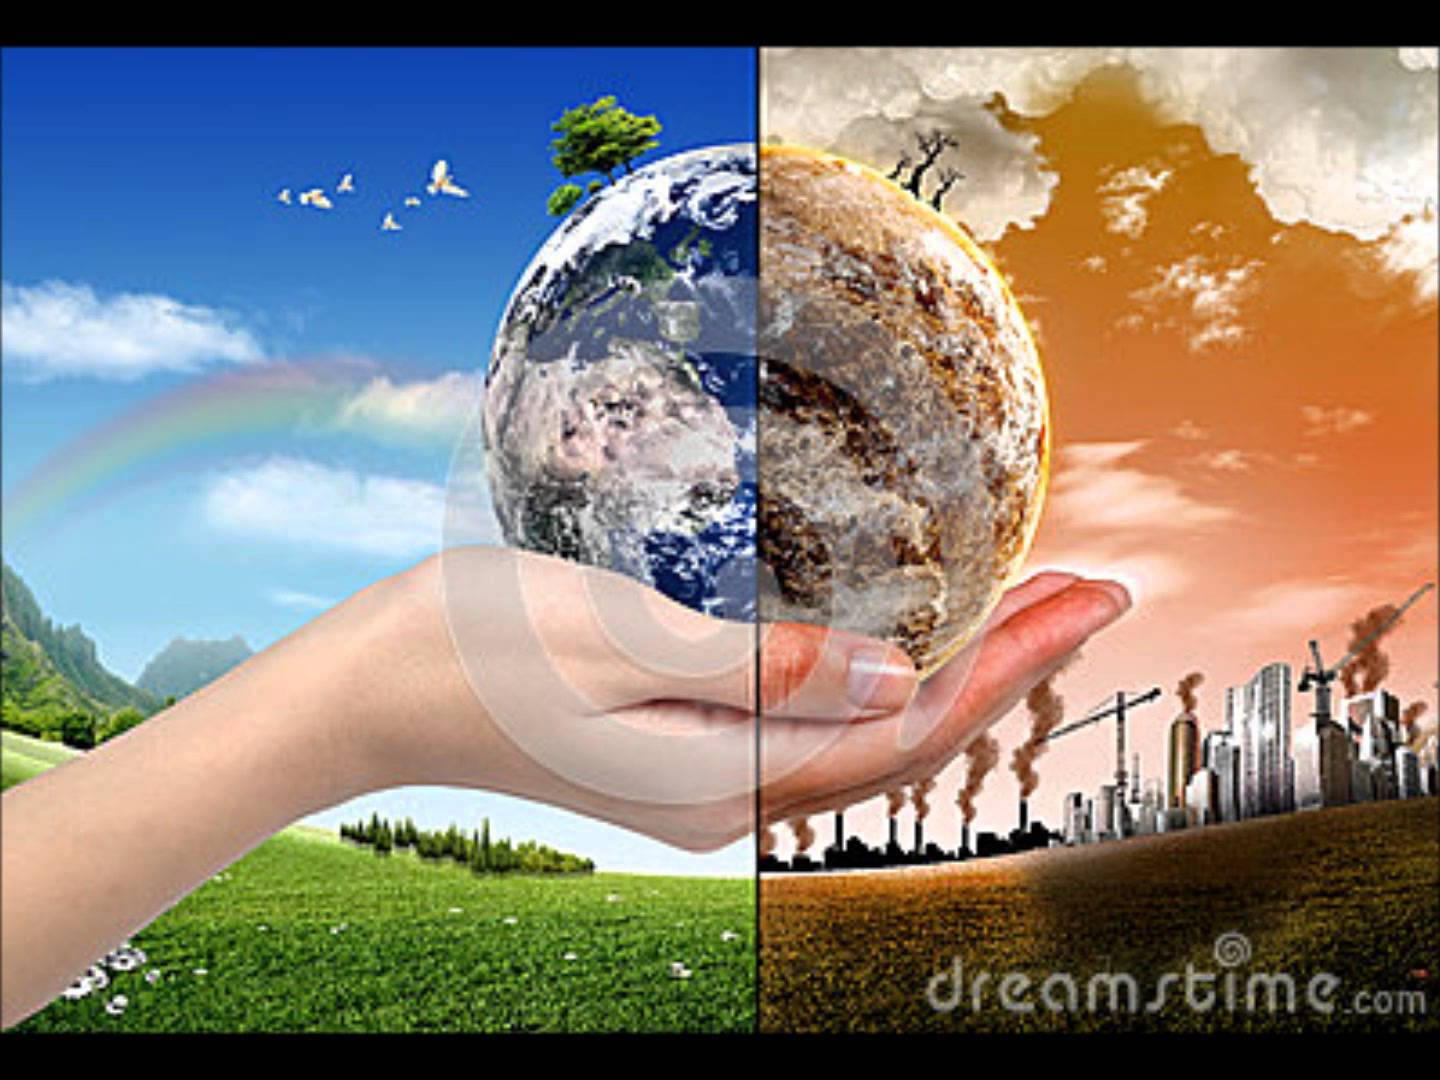 cause and effects of smog pollution environmental sciences essay Smog, also known as ground-level ozone, poses serious risks to public health and the environment learn about the causes and effects of smog.